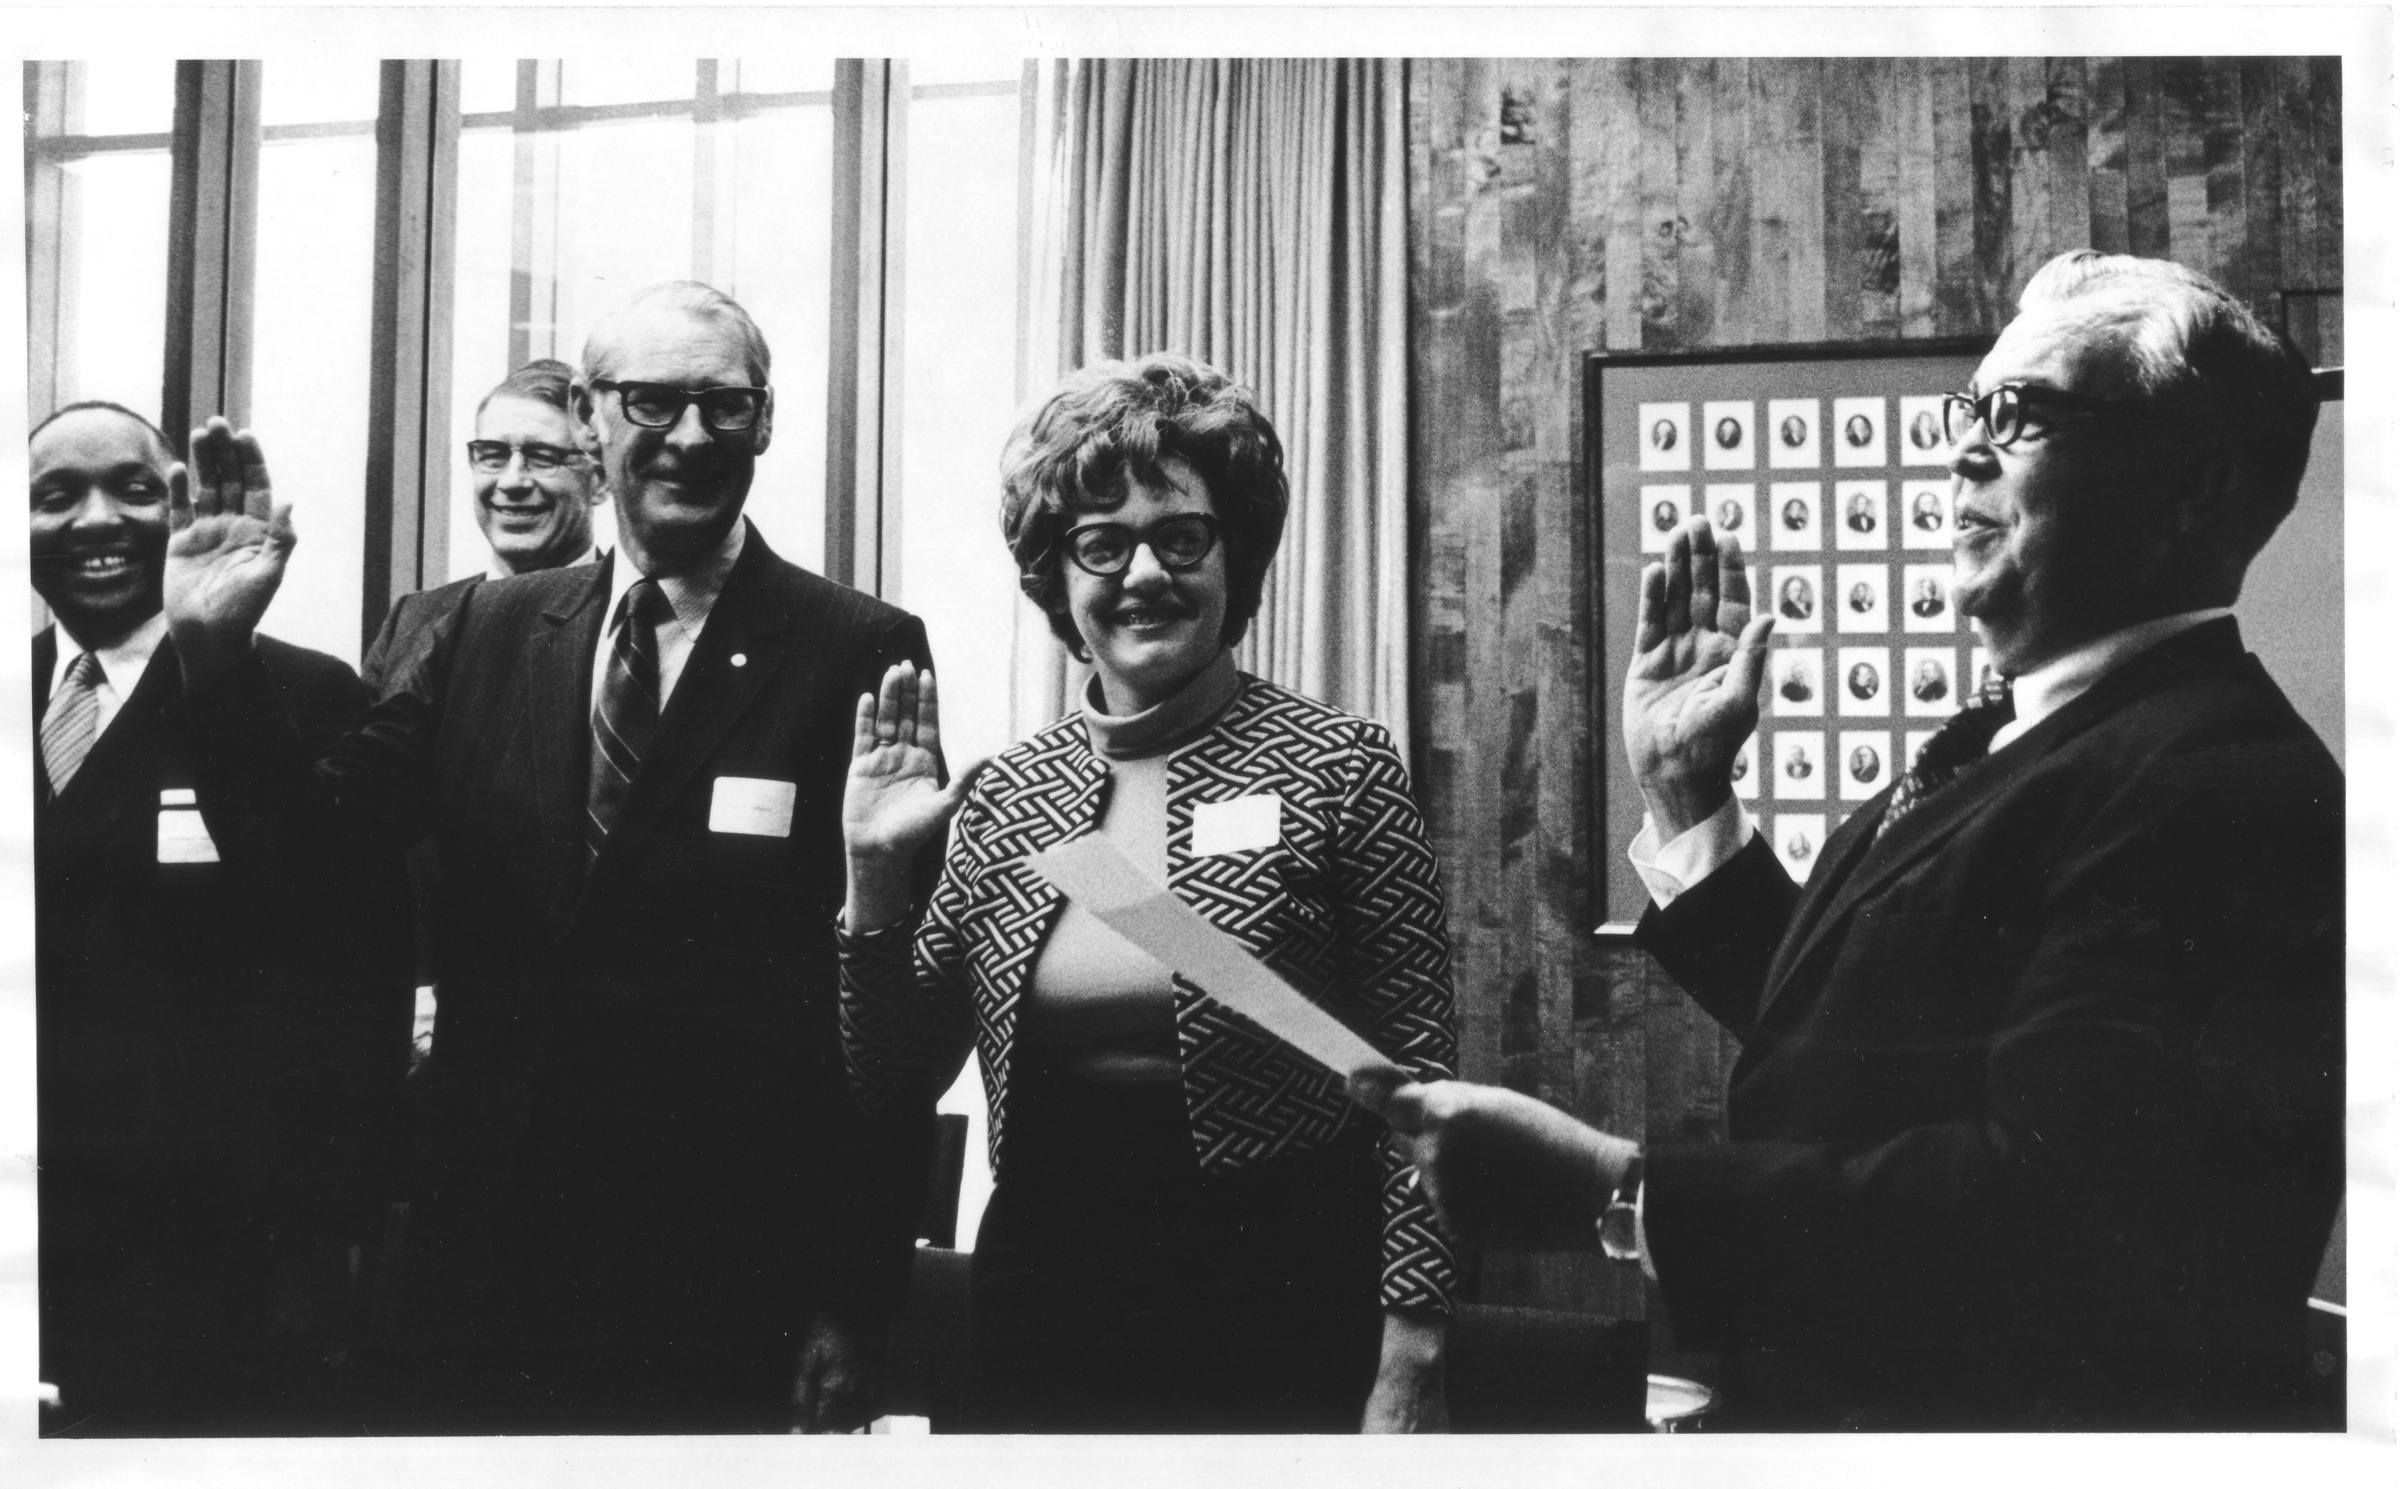 George Mason University Board of Visitors Inaugural Meeting, swearing-in ceremony, May 31, 1972